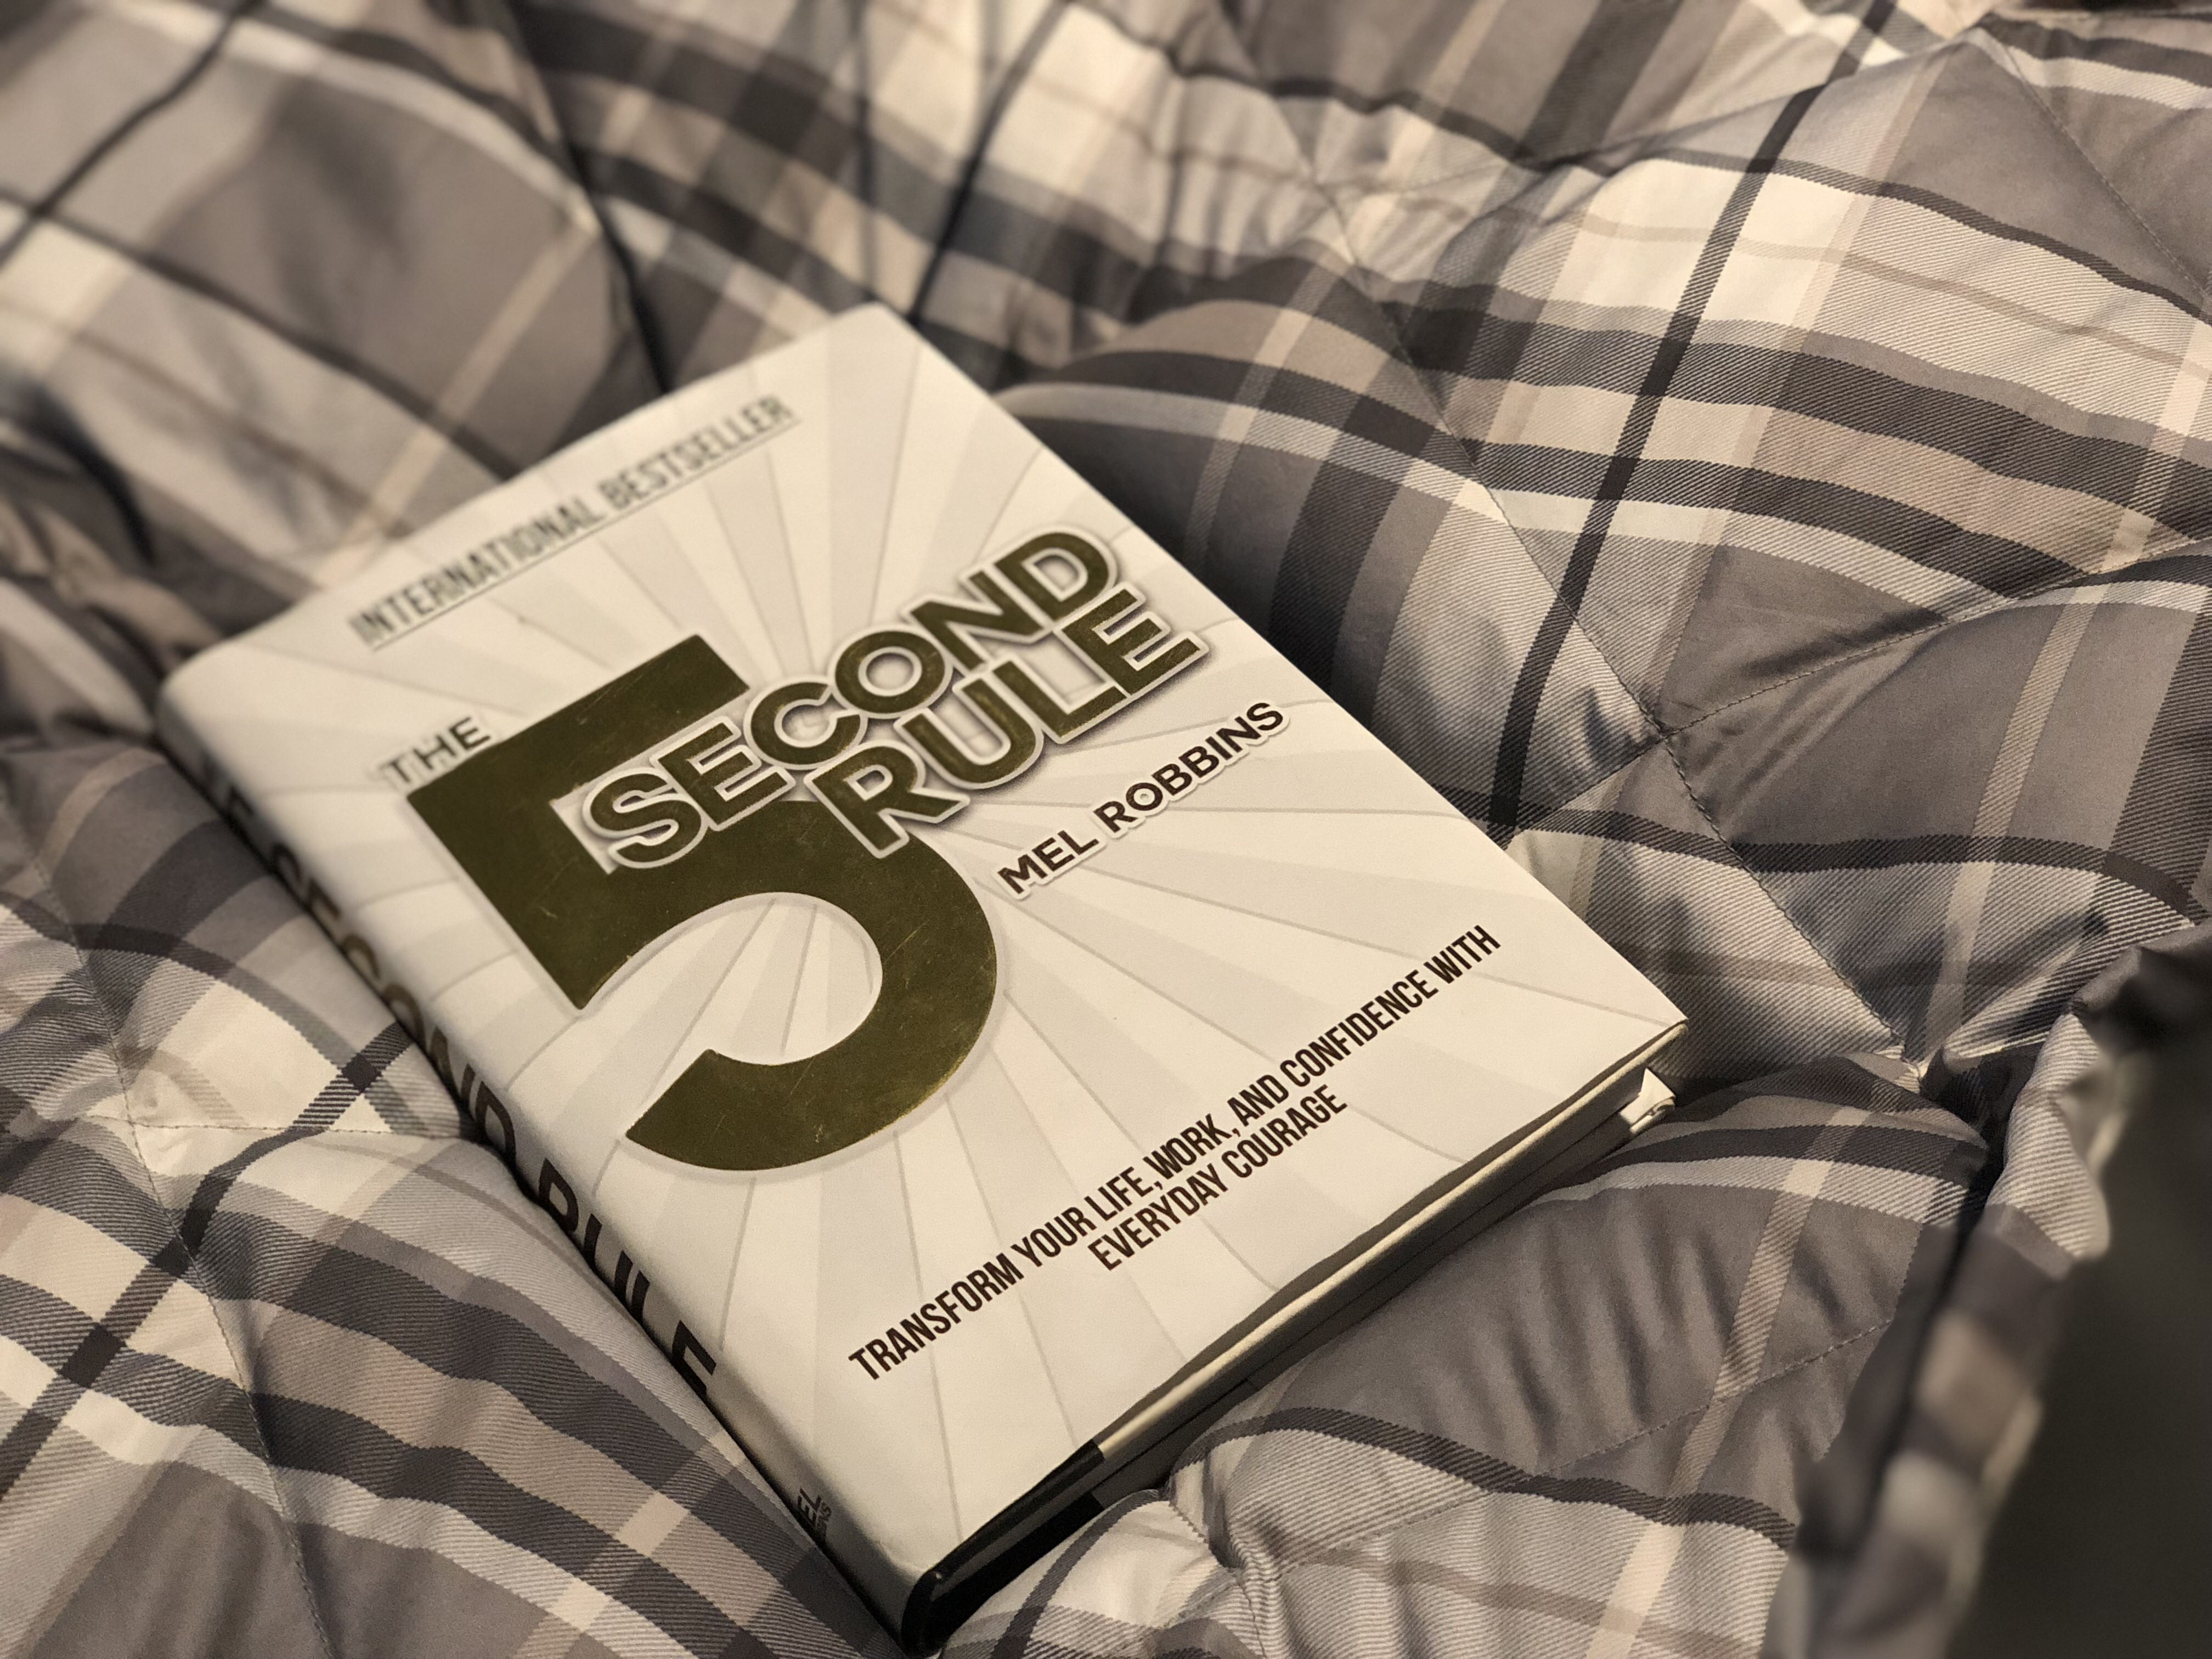 changed life 5 seconds – closeup of the book The 5 Second Rule by Mel Robbins on the bed